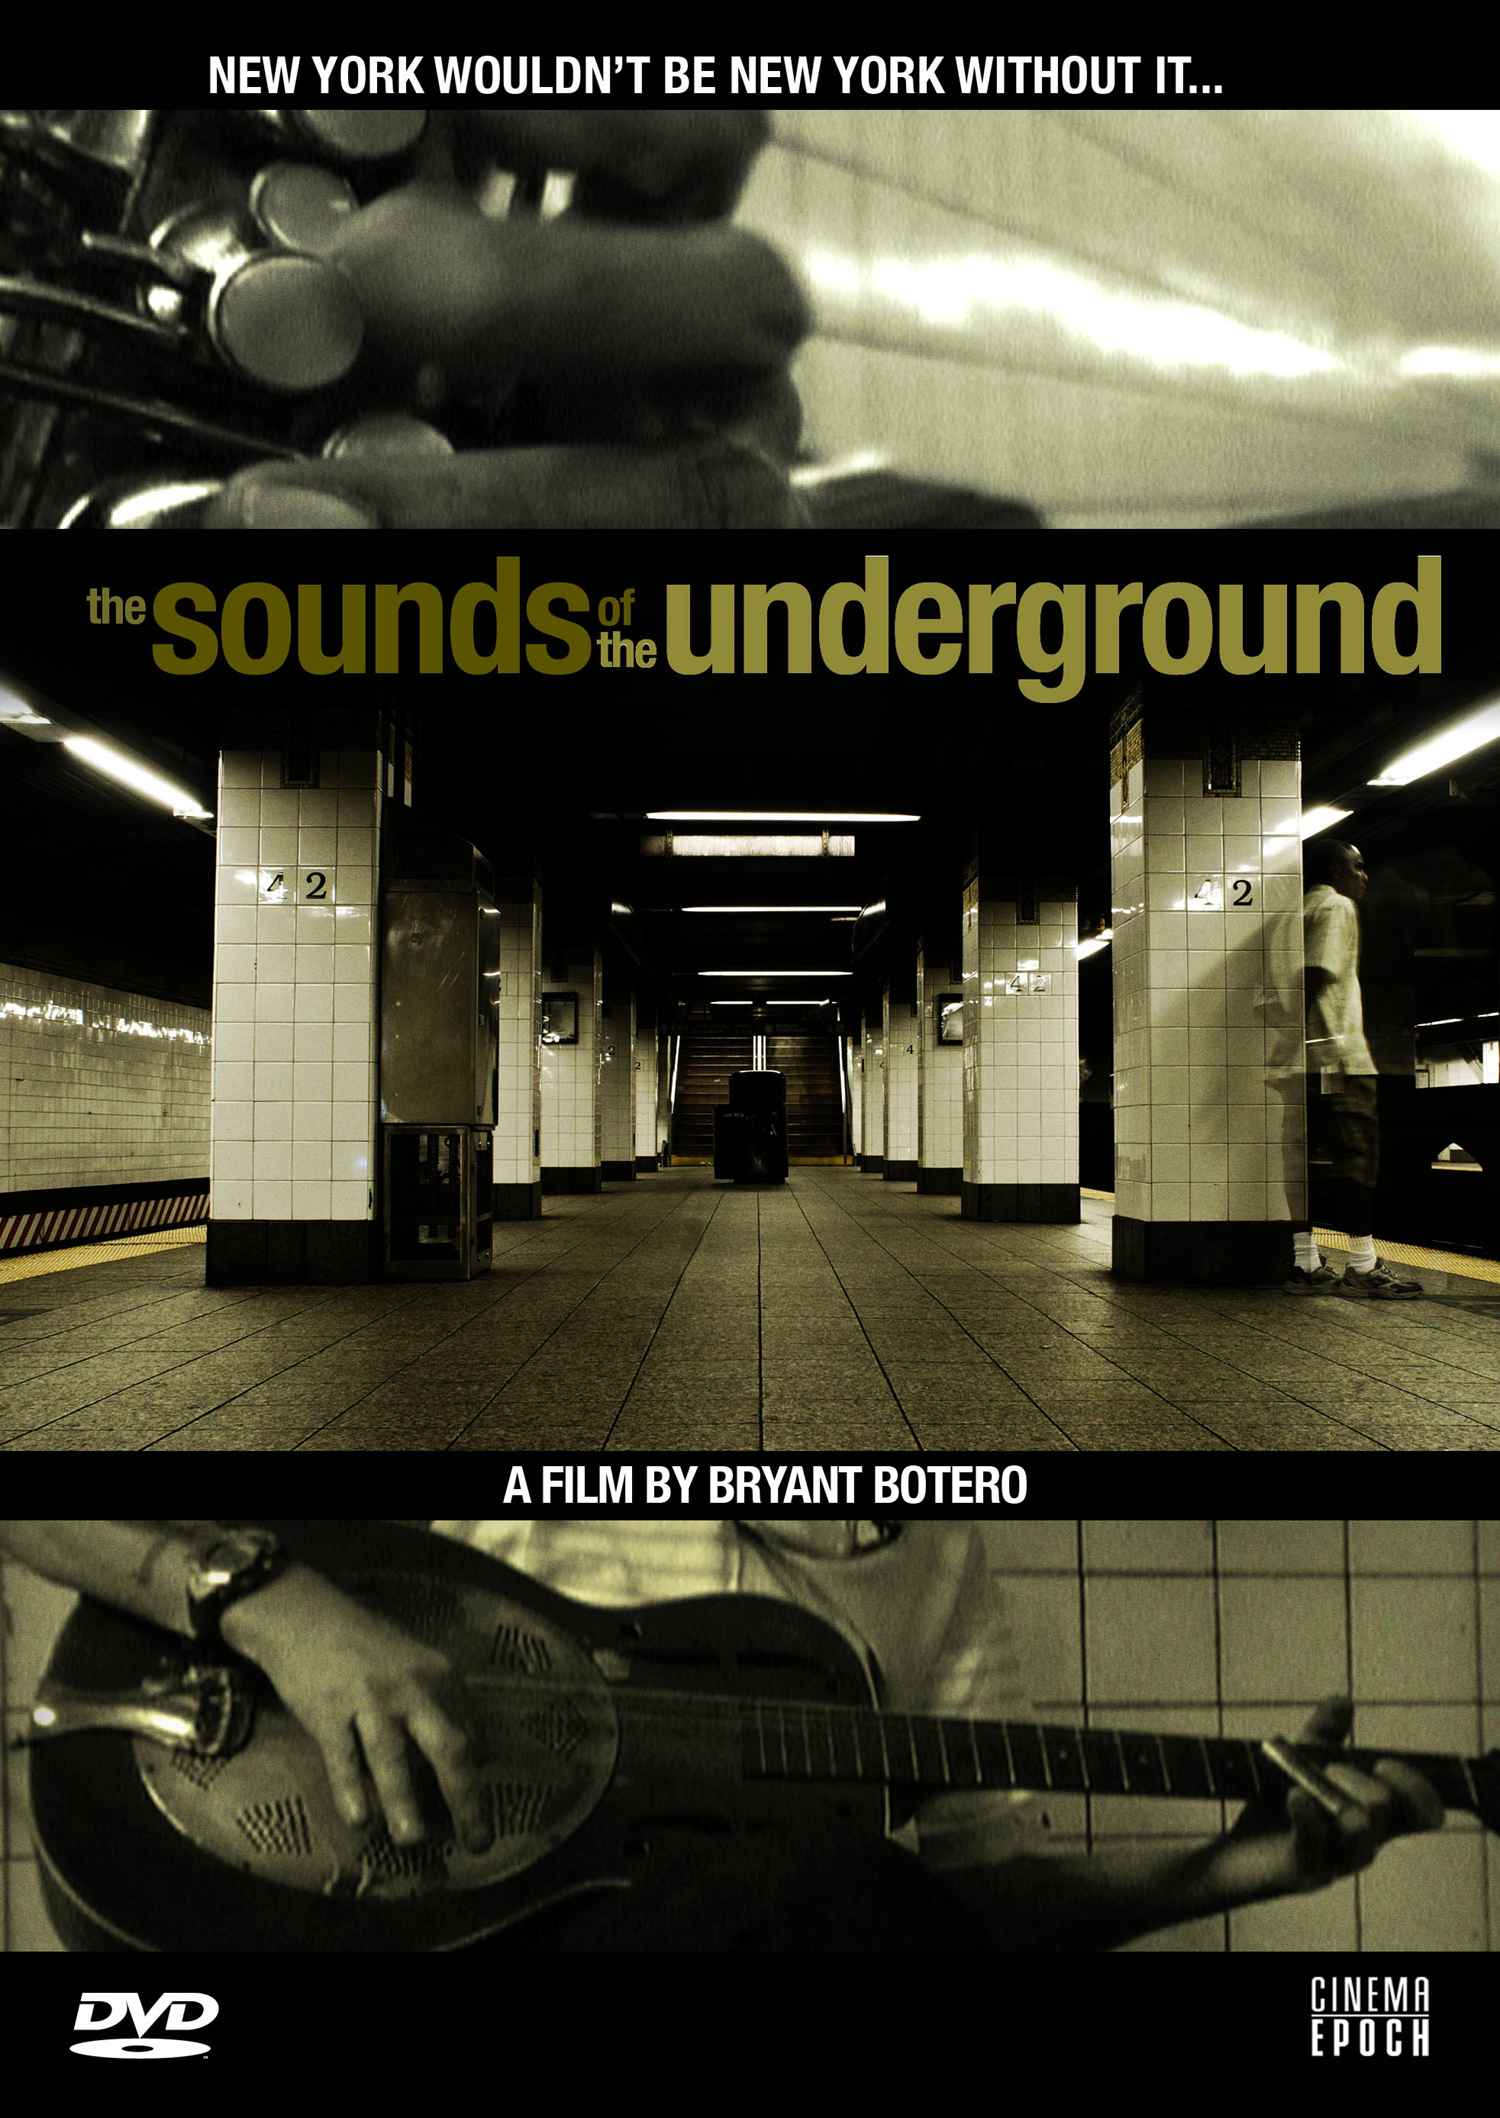 The Sounds of the Underground